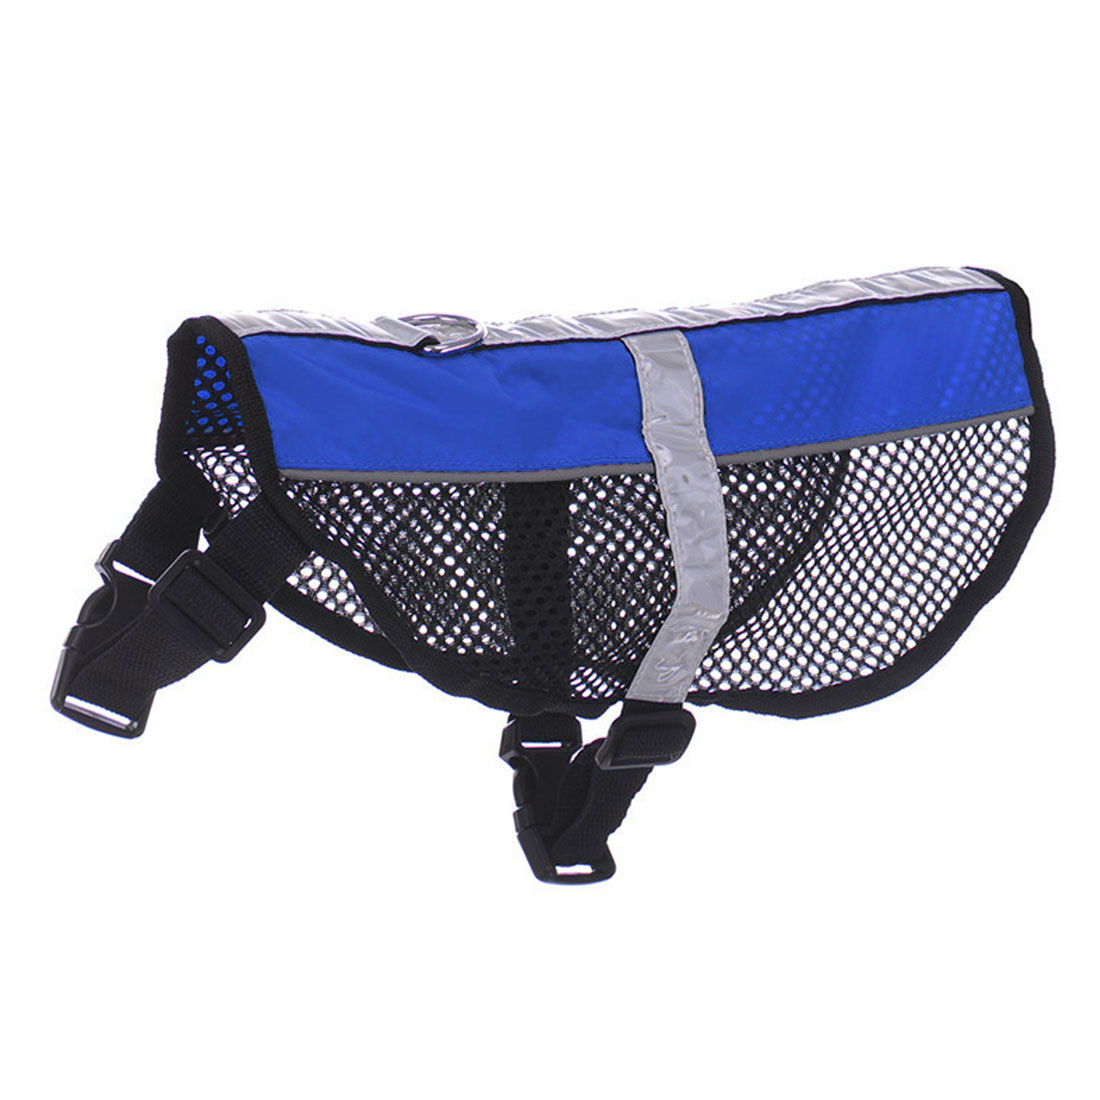 Service Dog Mesh Vest Harness Cool Comfort Nylon High Visibility Safety Jacket Blue L